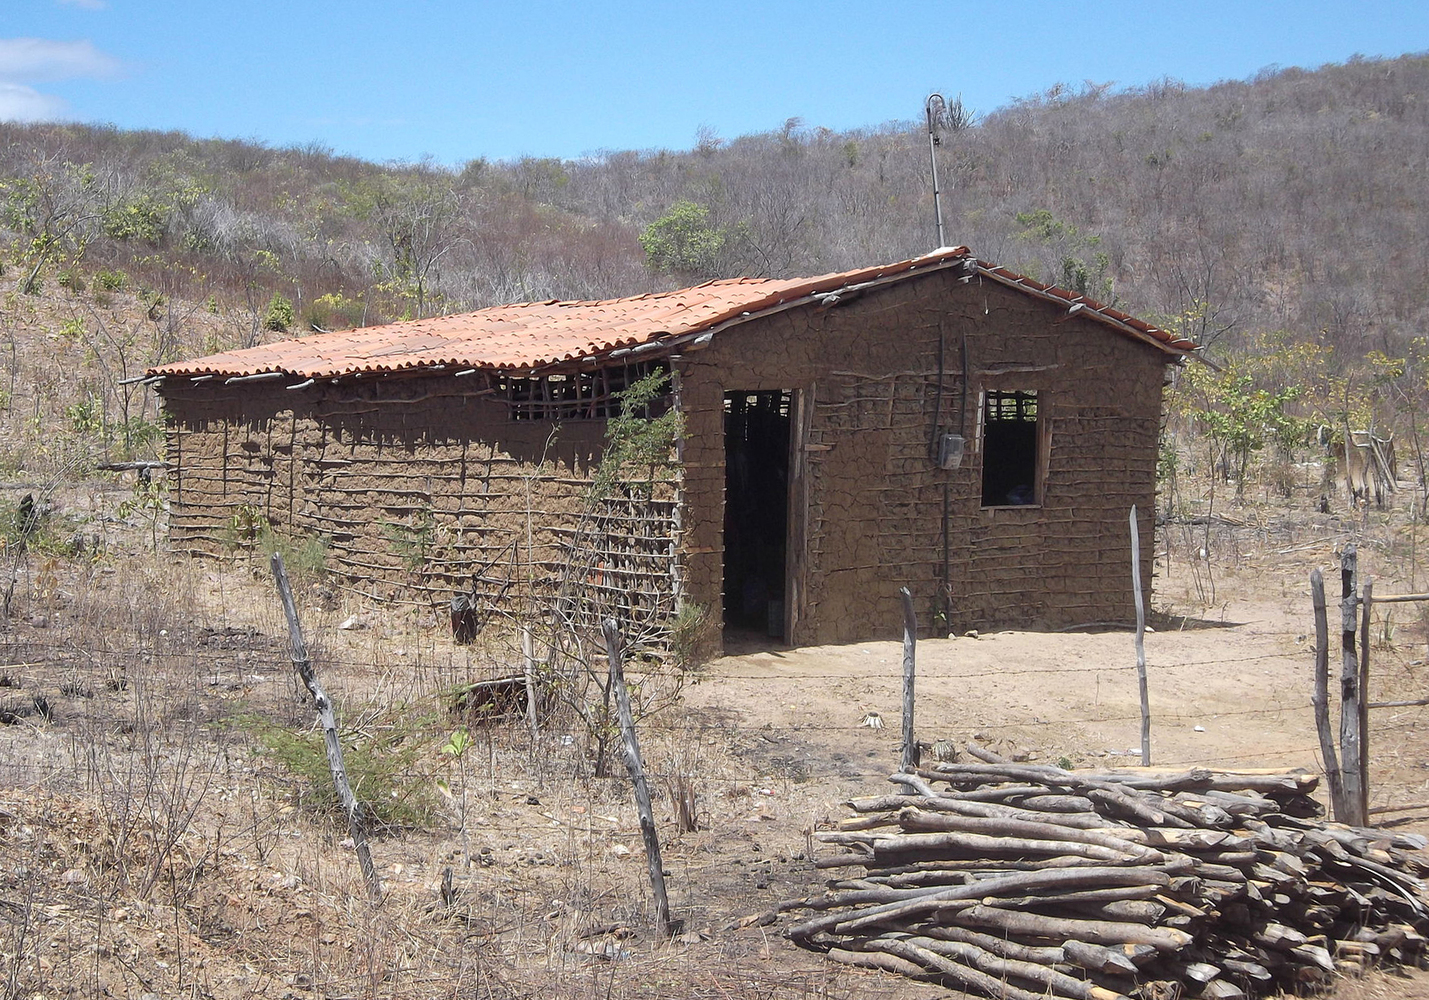 Brazilian Houses: 9 Examples of Residential Vernacular Architecture,Wattle and daub house in Maranguape, Ceará, Brasil. © Image CC BY-SA 3.0